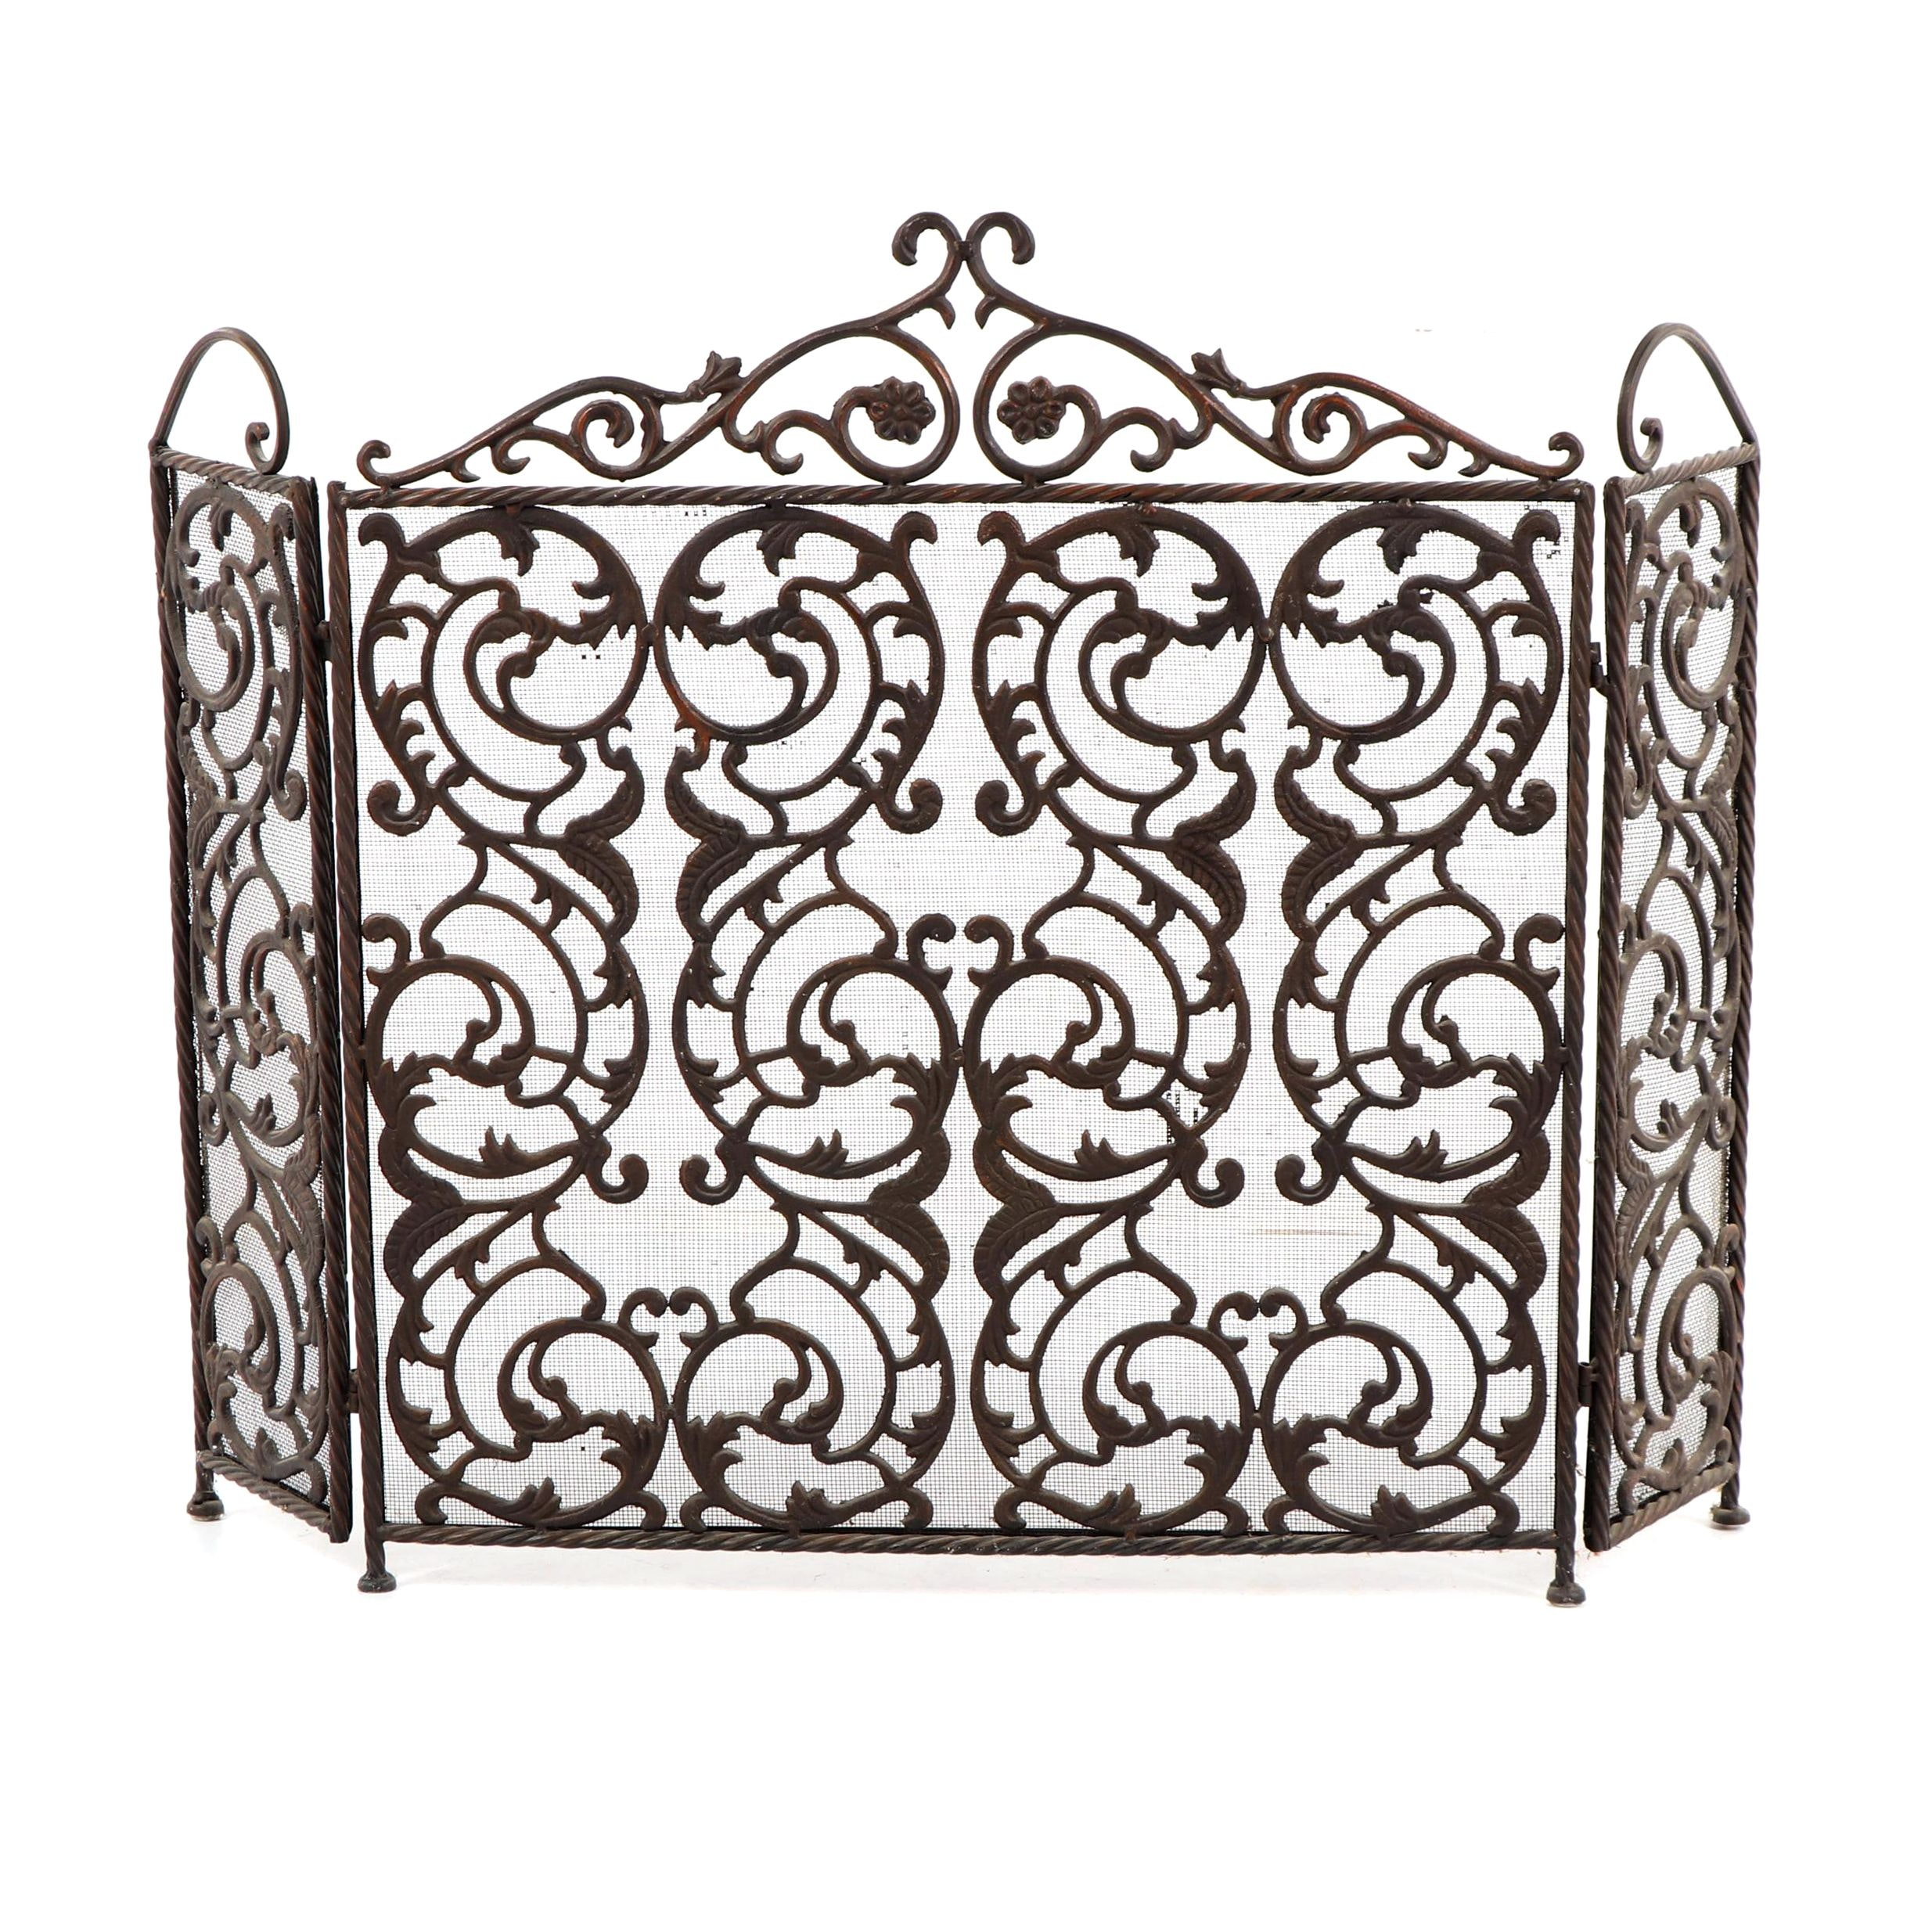 Reticulated Wrought Iron Nursery Fire Screen